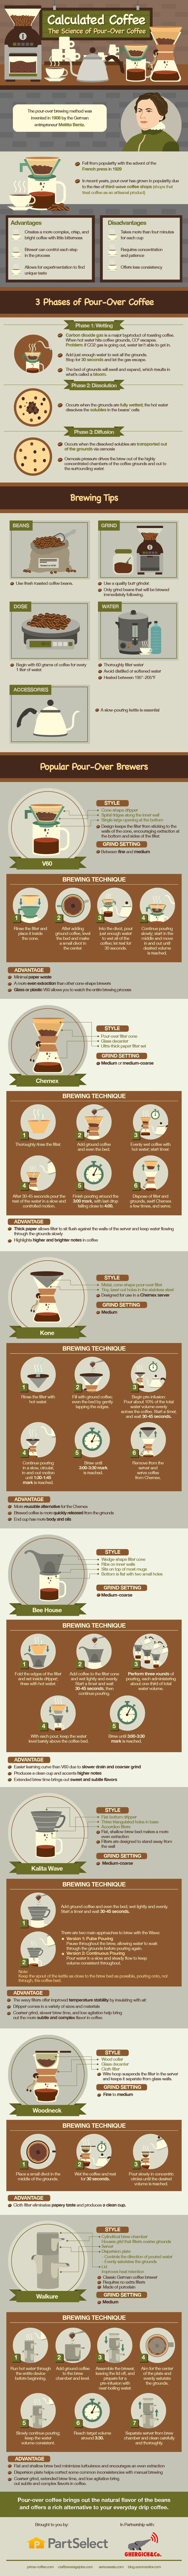 Science of Pour Over Coffee